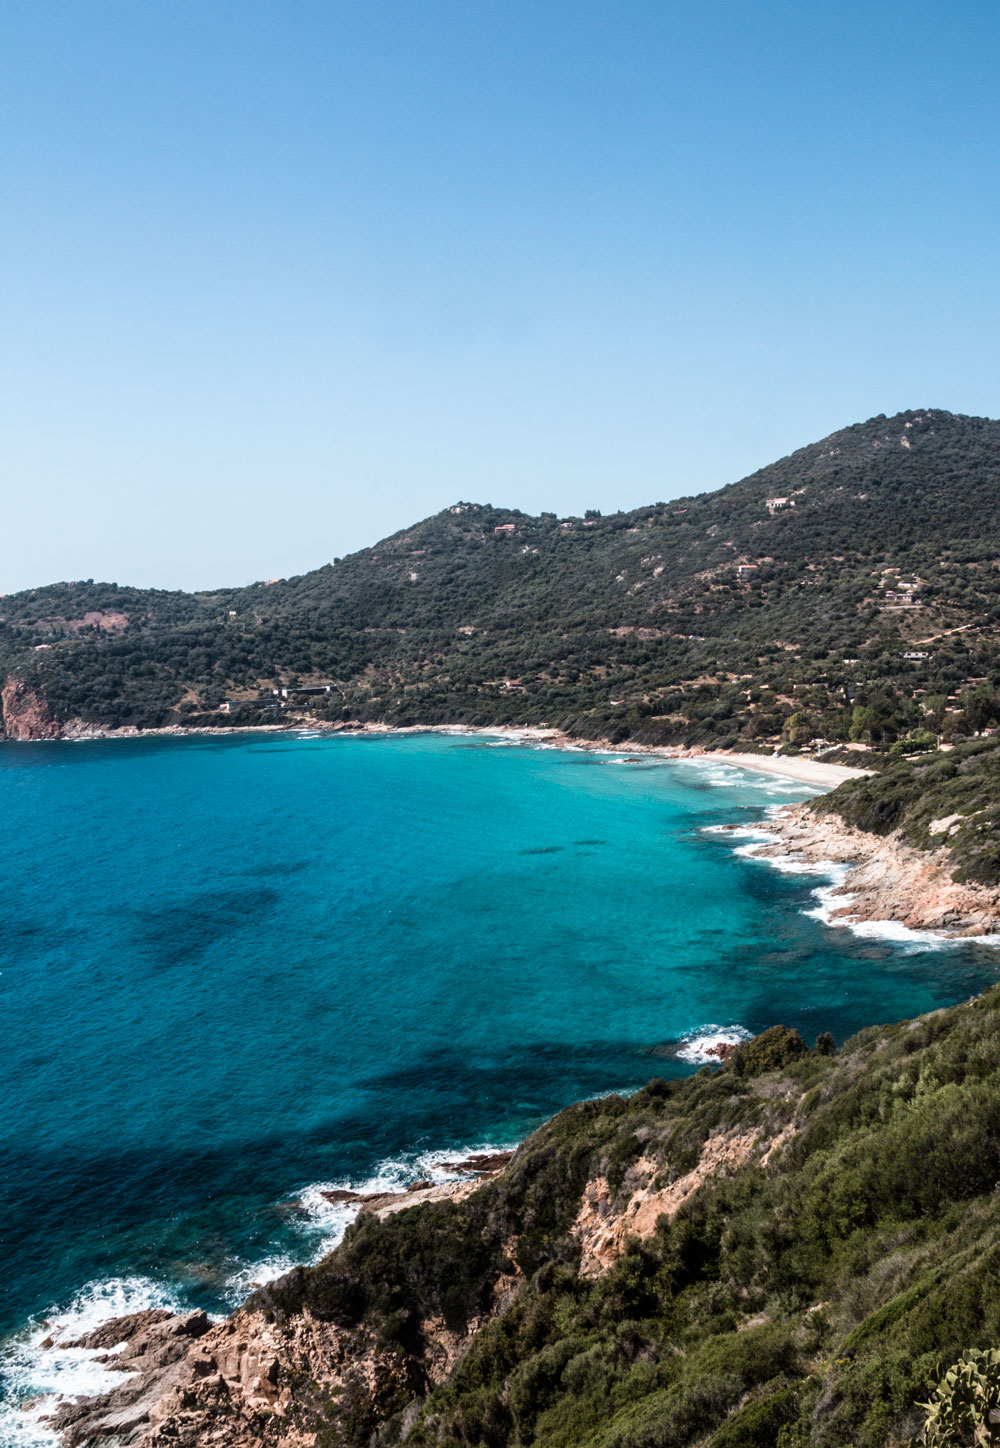 Road trip along the rocky west coast of Corsica